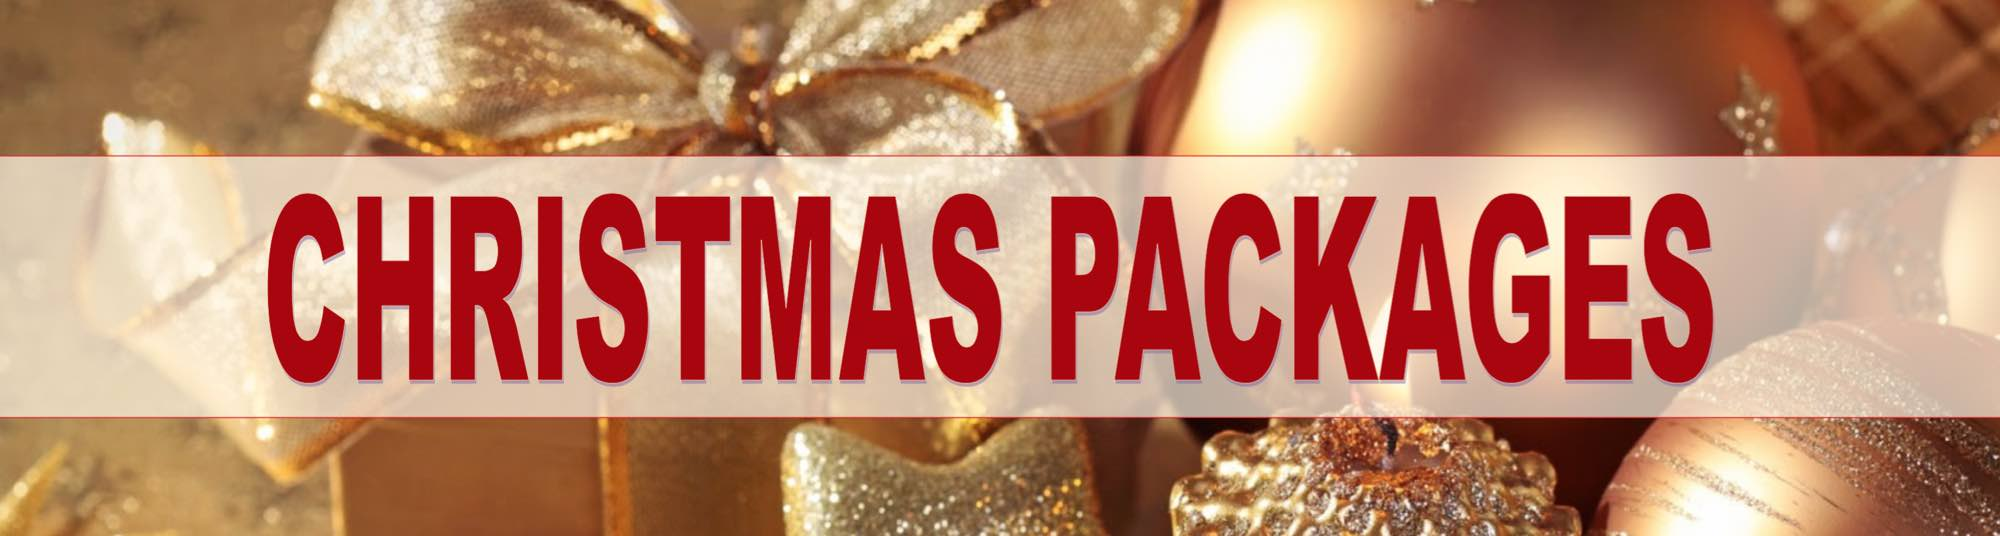 Beauty Christmas packages.jpg